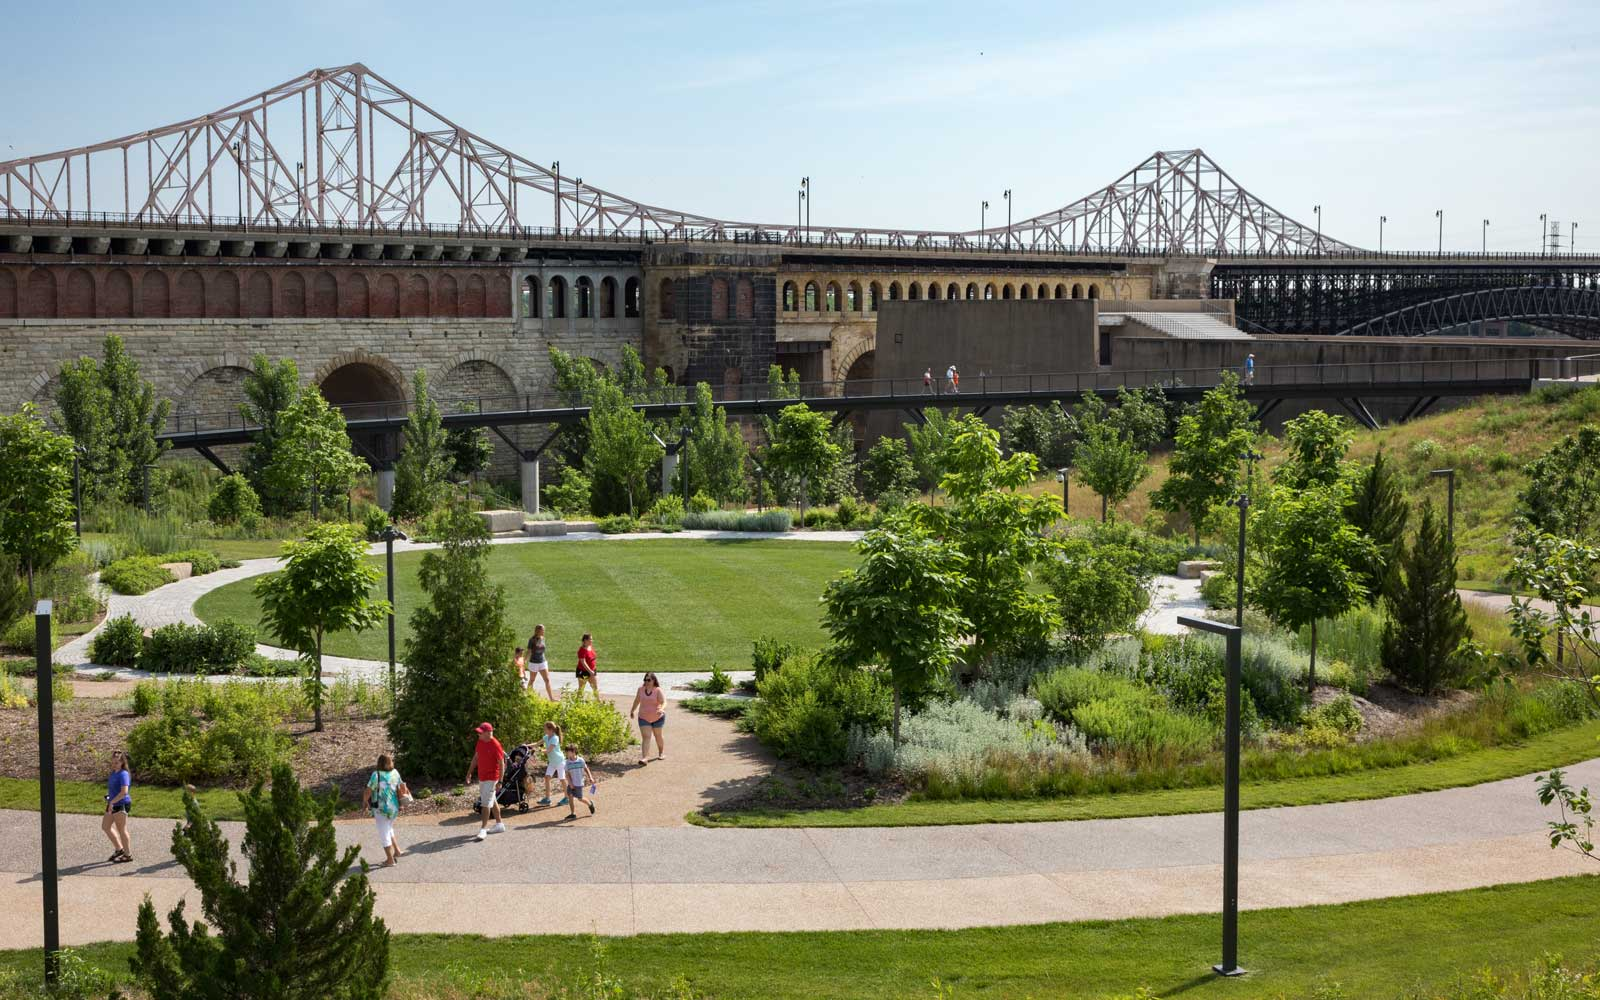 View of the new St Louis Arch Park